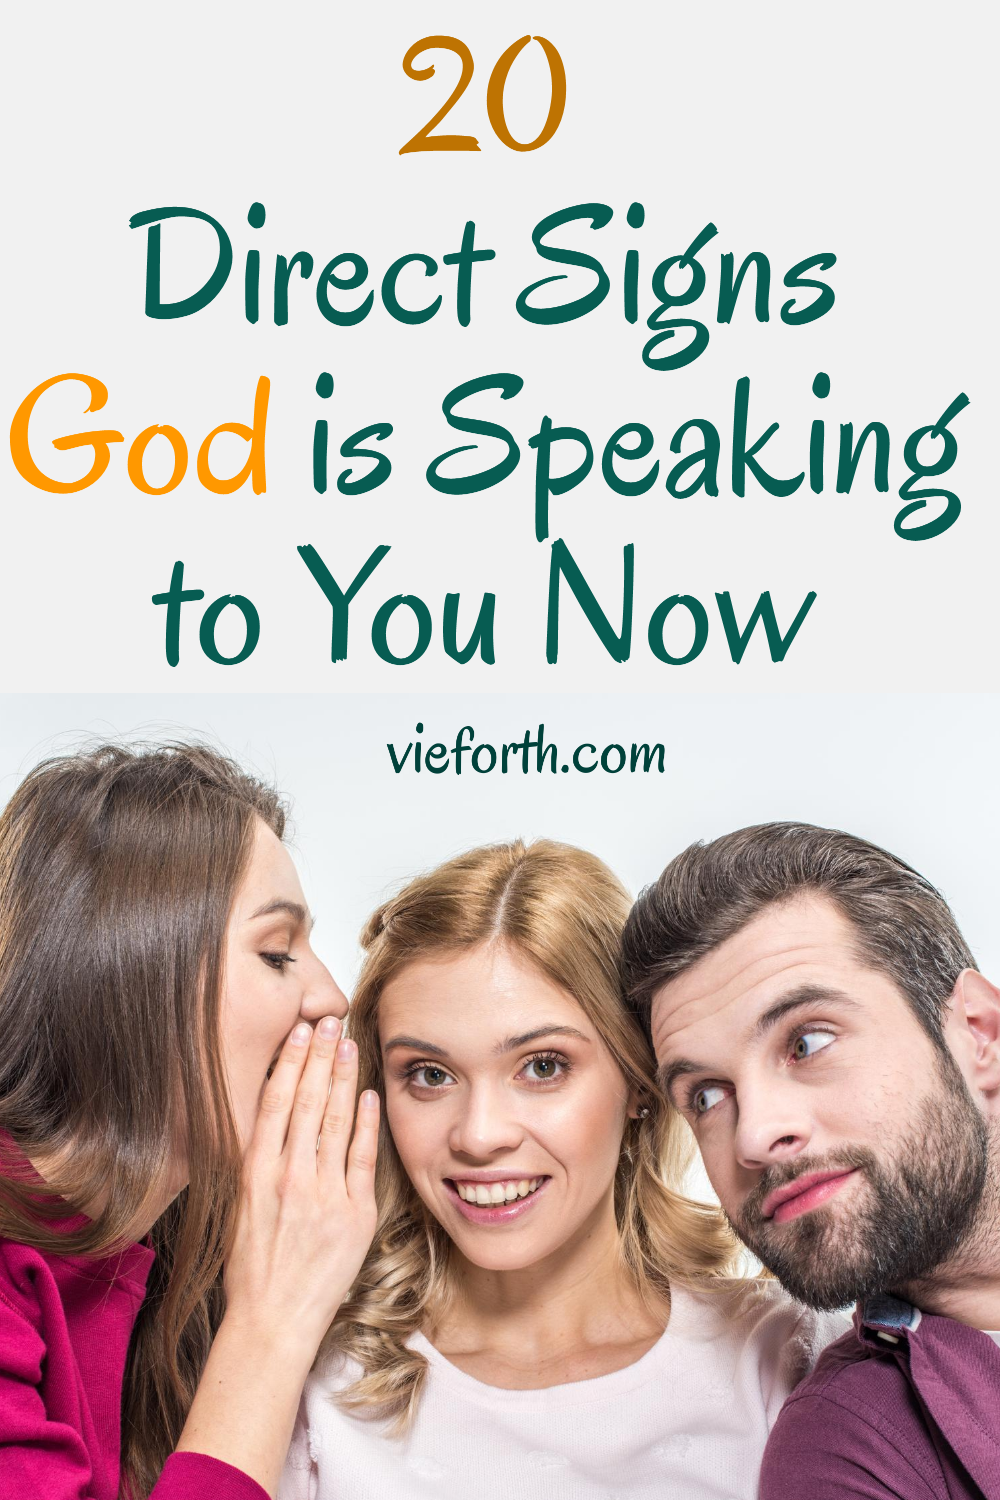 20 Direct Signs God is Speaking to You Now